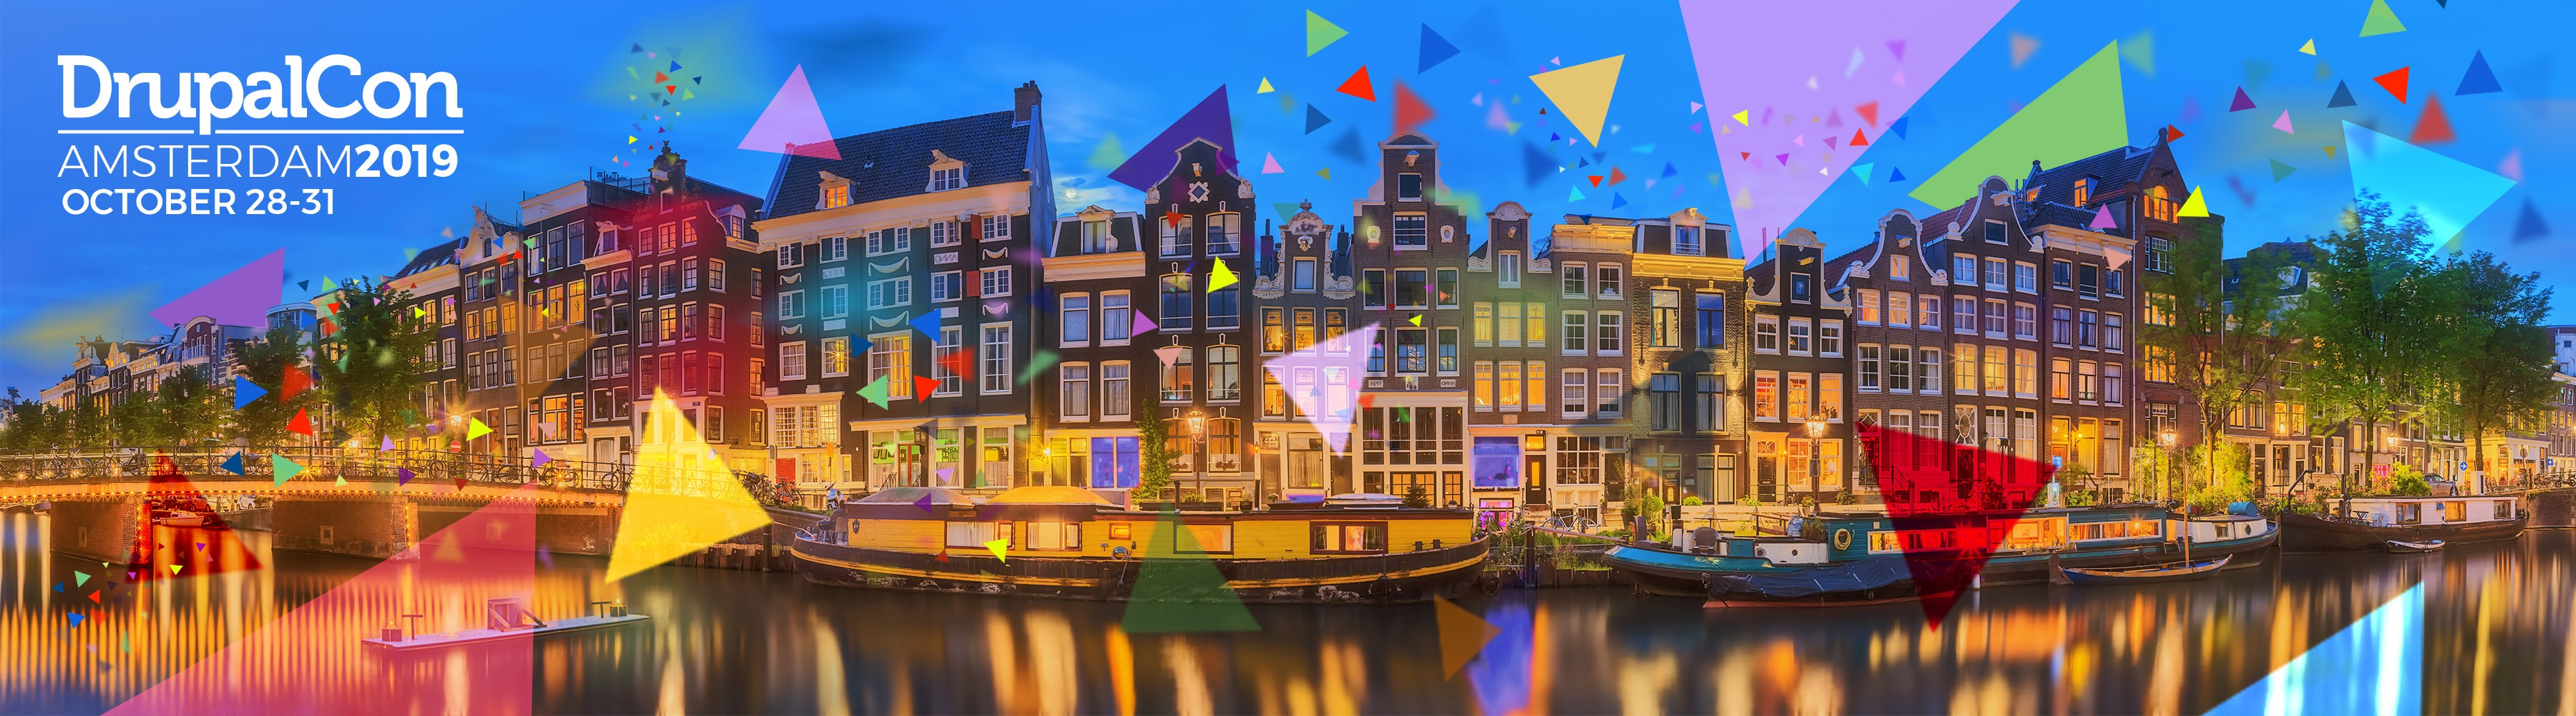 DrupalCon Amsterdam 2019 official promotional banner with Amsterdam canals and coloured party particles.